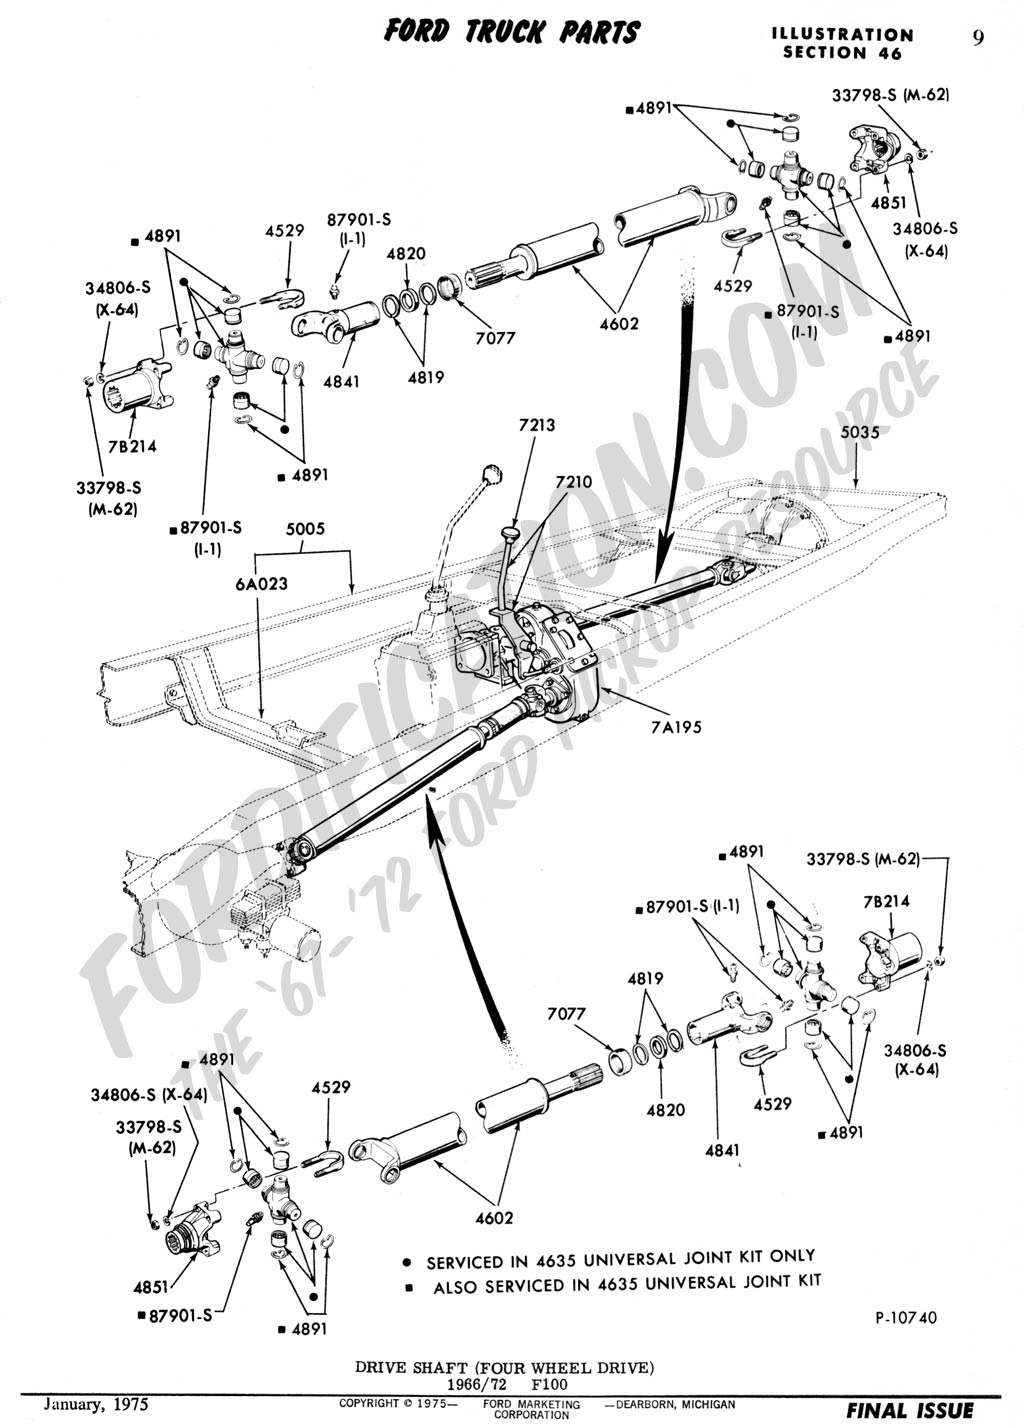 2002 f350 suspension diagram wiring diagram inside